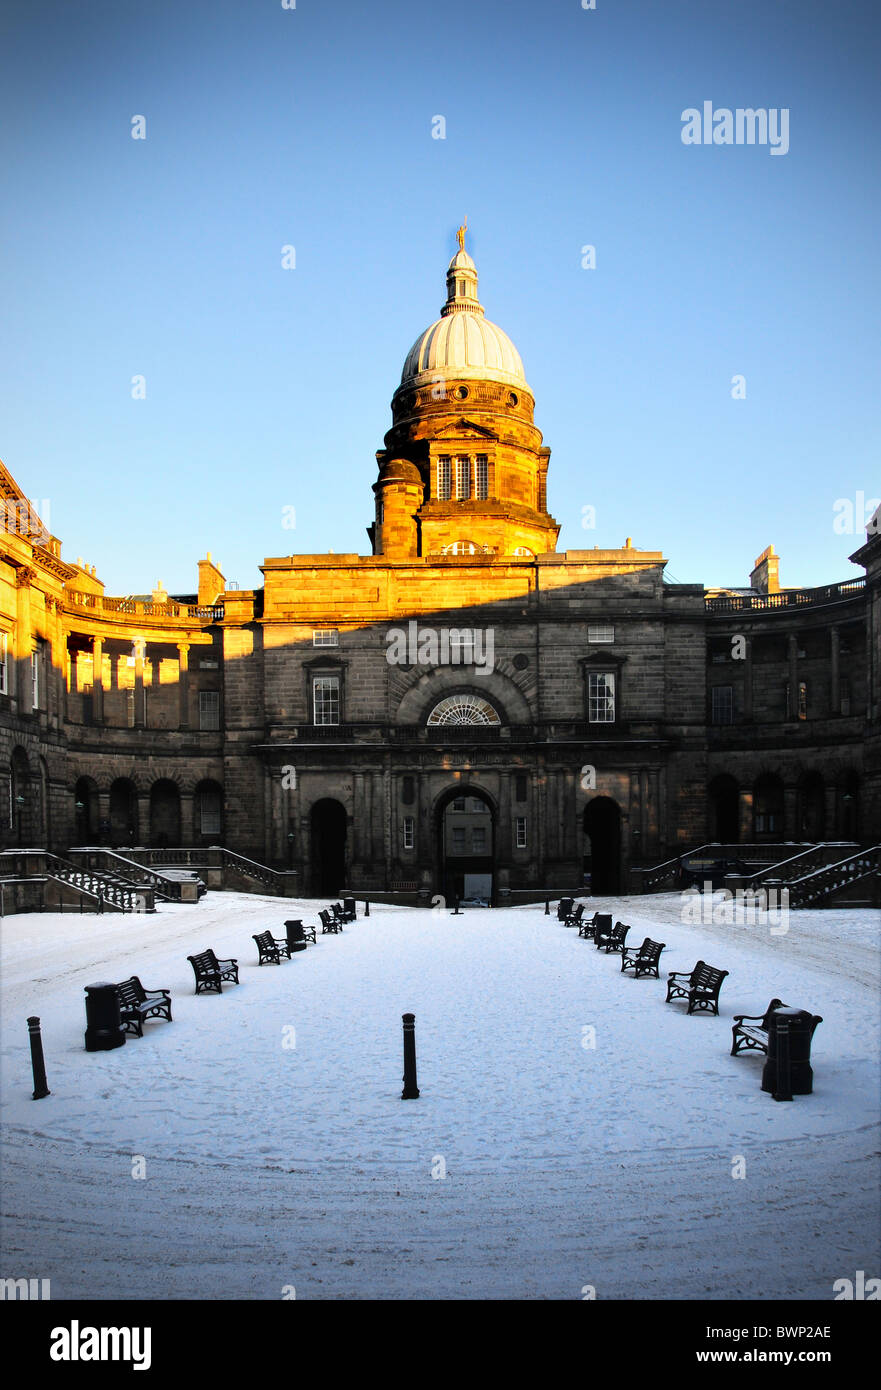 Law Faculty Old College Edinburgh university Winter Snow Blue Sky - Stock Image